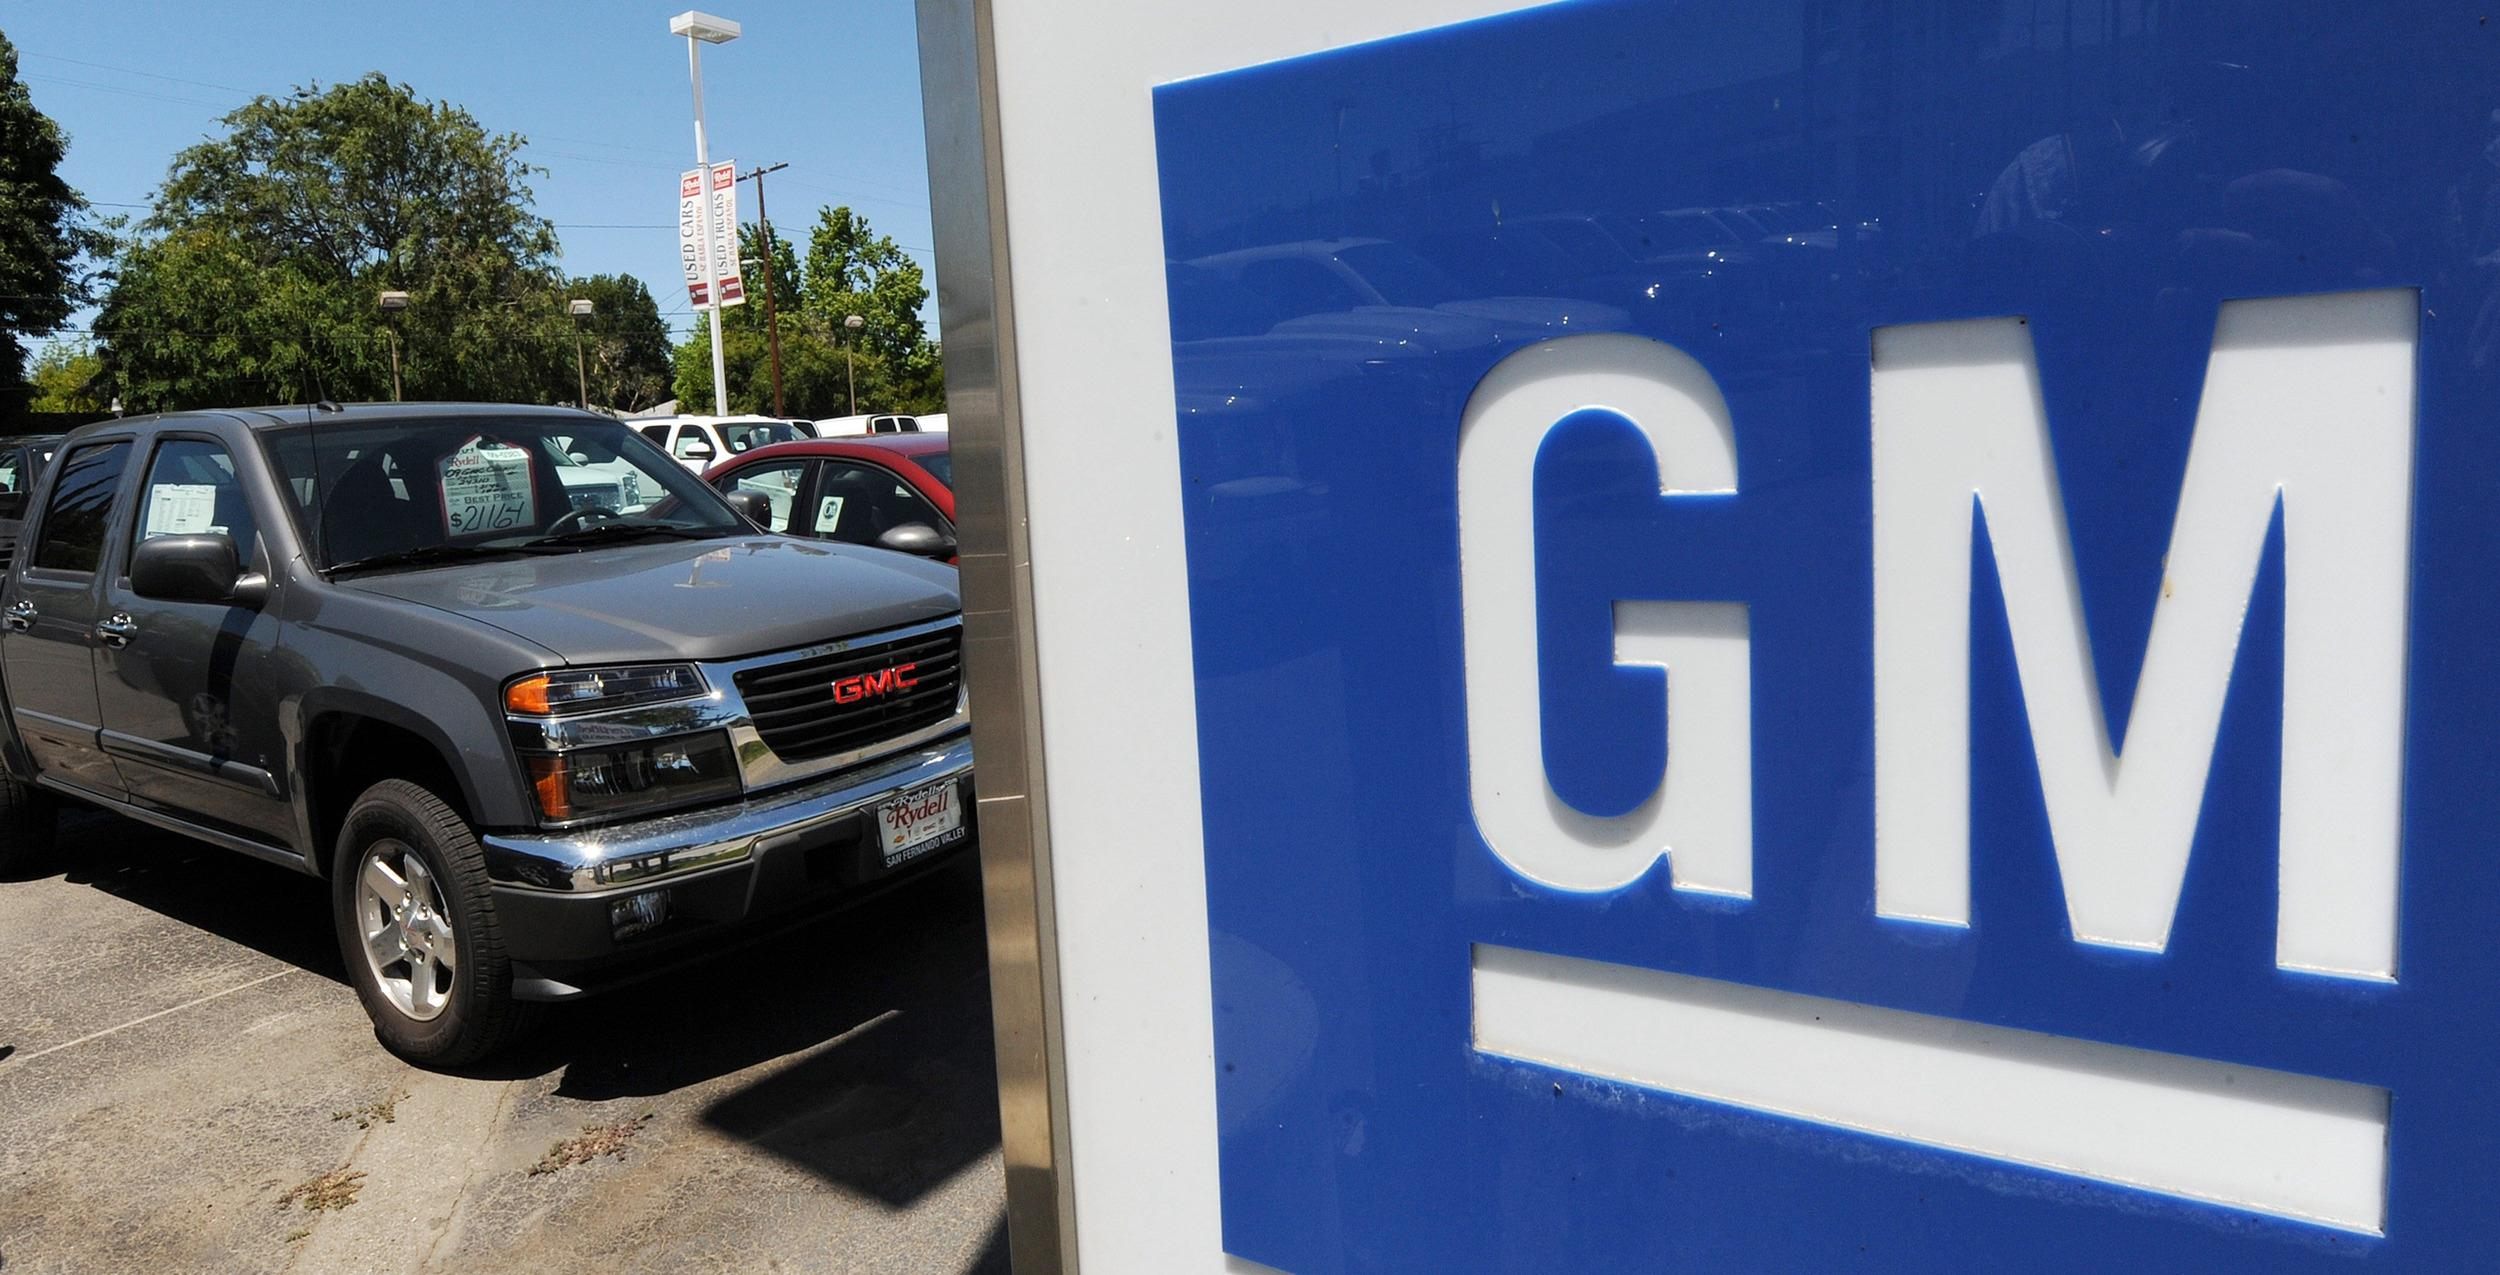 GM's auto financing unit has received a subpoena from the U.S. Department of Justice requesting information about the company's use of subprime automobile loan contracts.